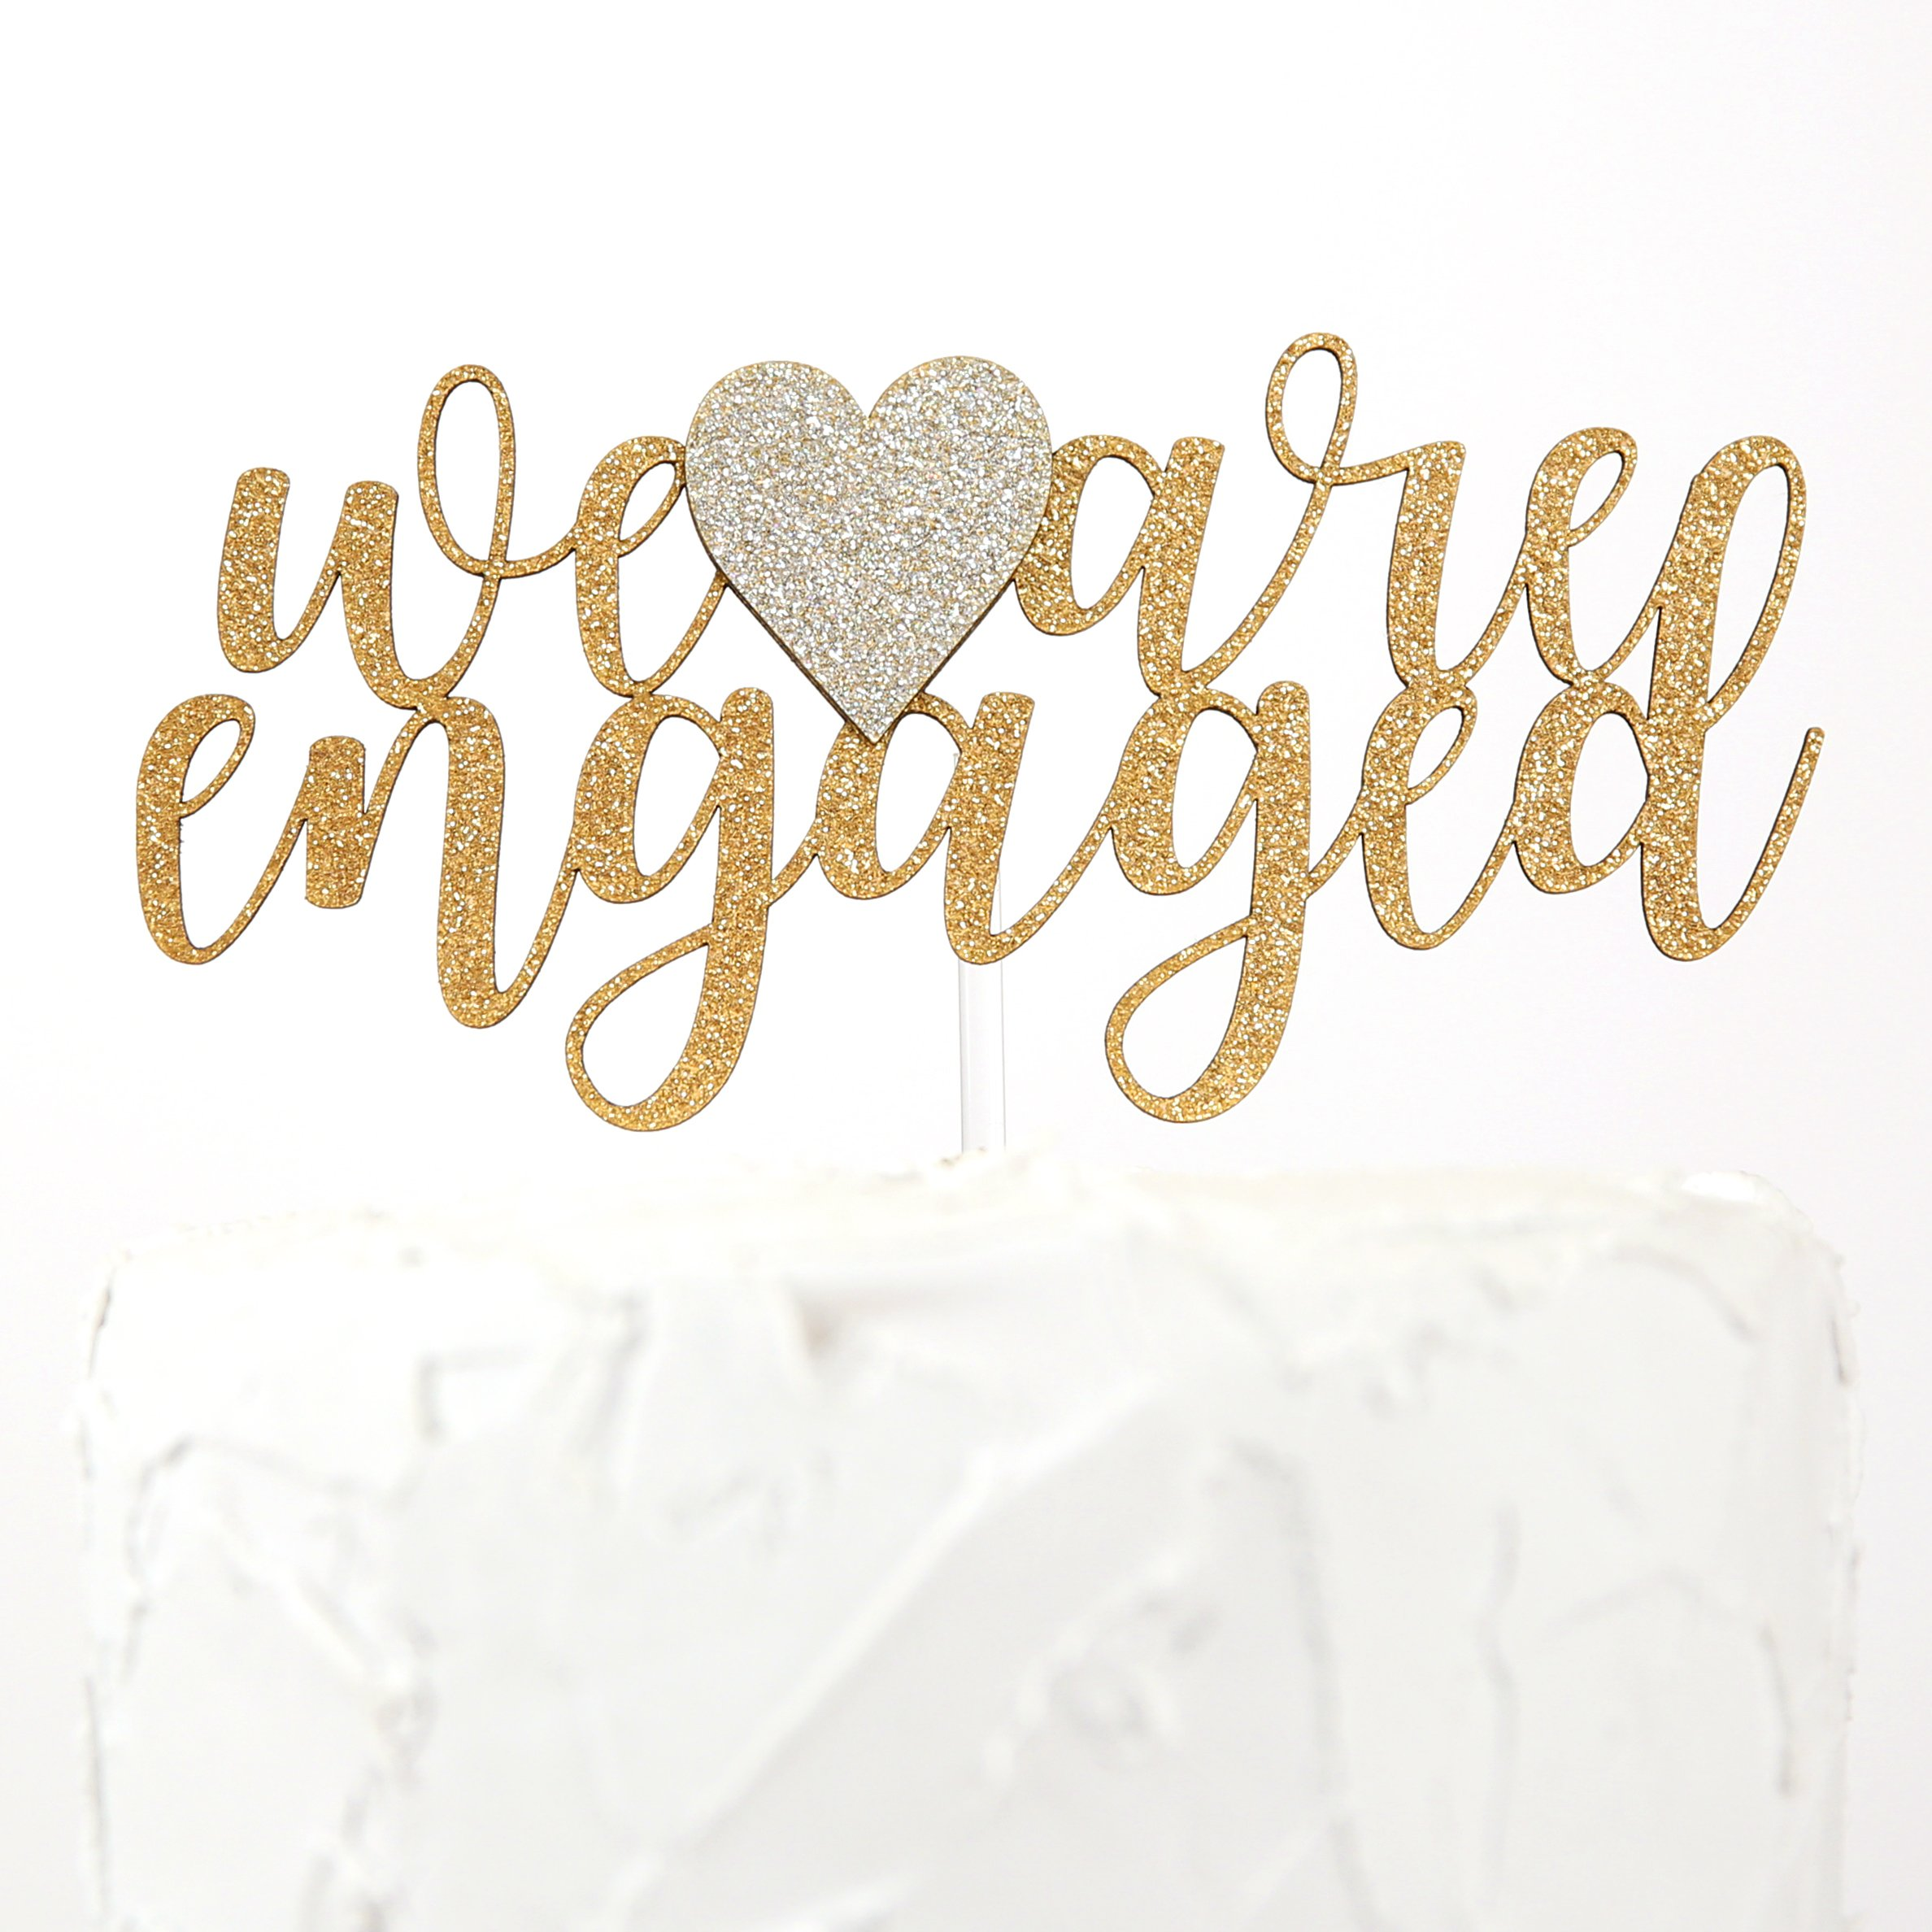 NANASUKO Engagement Party Cake Topper - we are engaged - Premium quality Made in USA - gold glitter with light gold heart